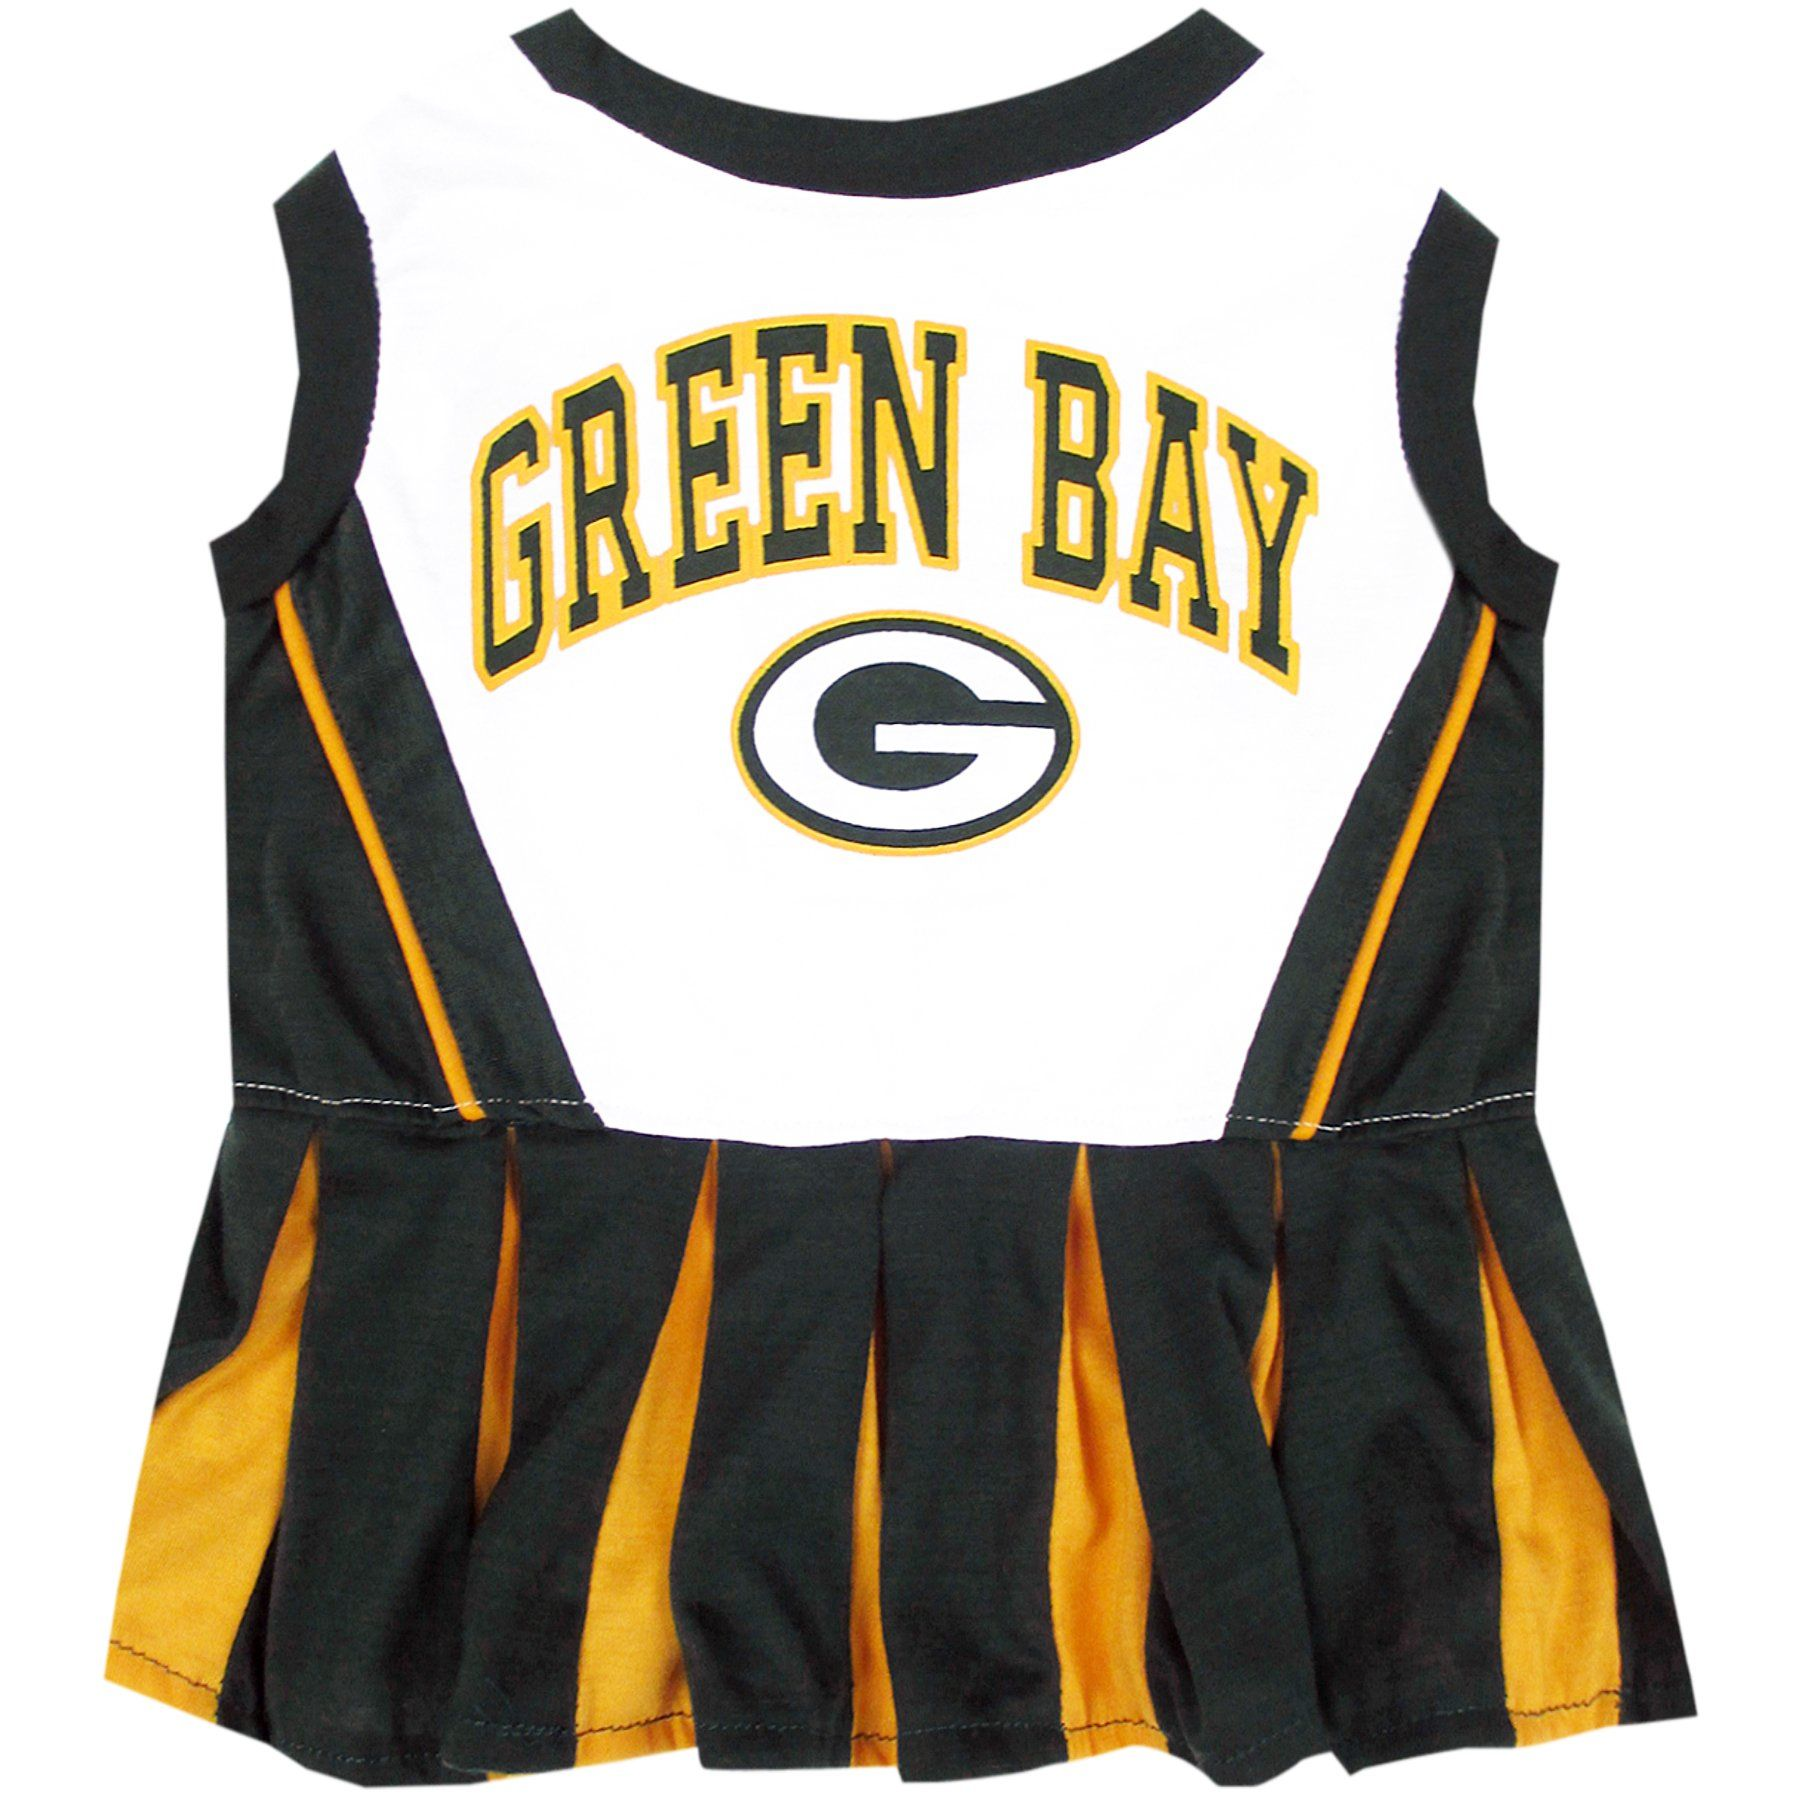 Green Bay Packers NFL Cheerleader Dress For Dogs Size